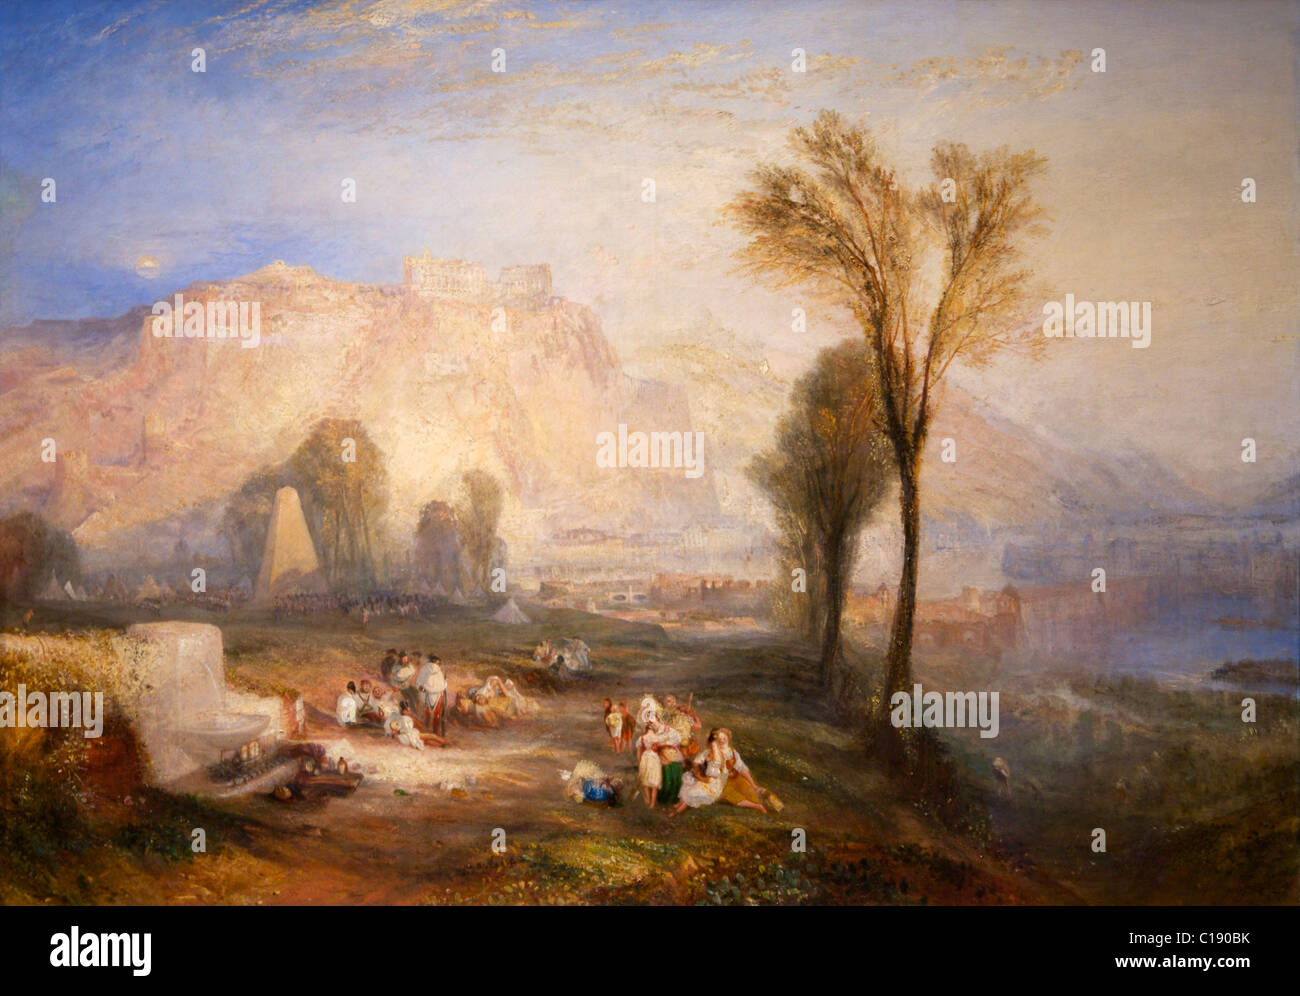 The Bright Stone of Honour (Ehrenbreitstein), and Tomb of Marceau, by Joseph Mallord William Turner, 1834-1835, - Stock Image